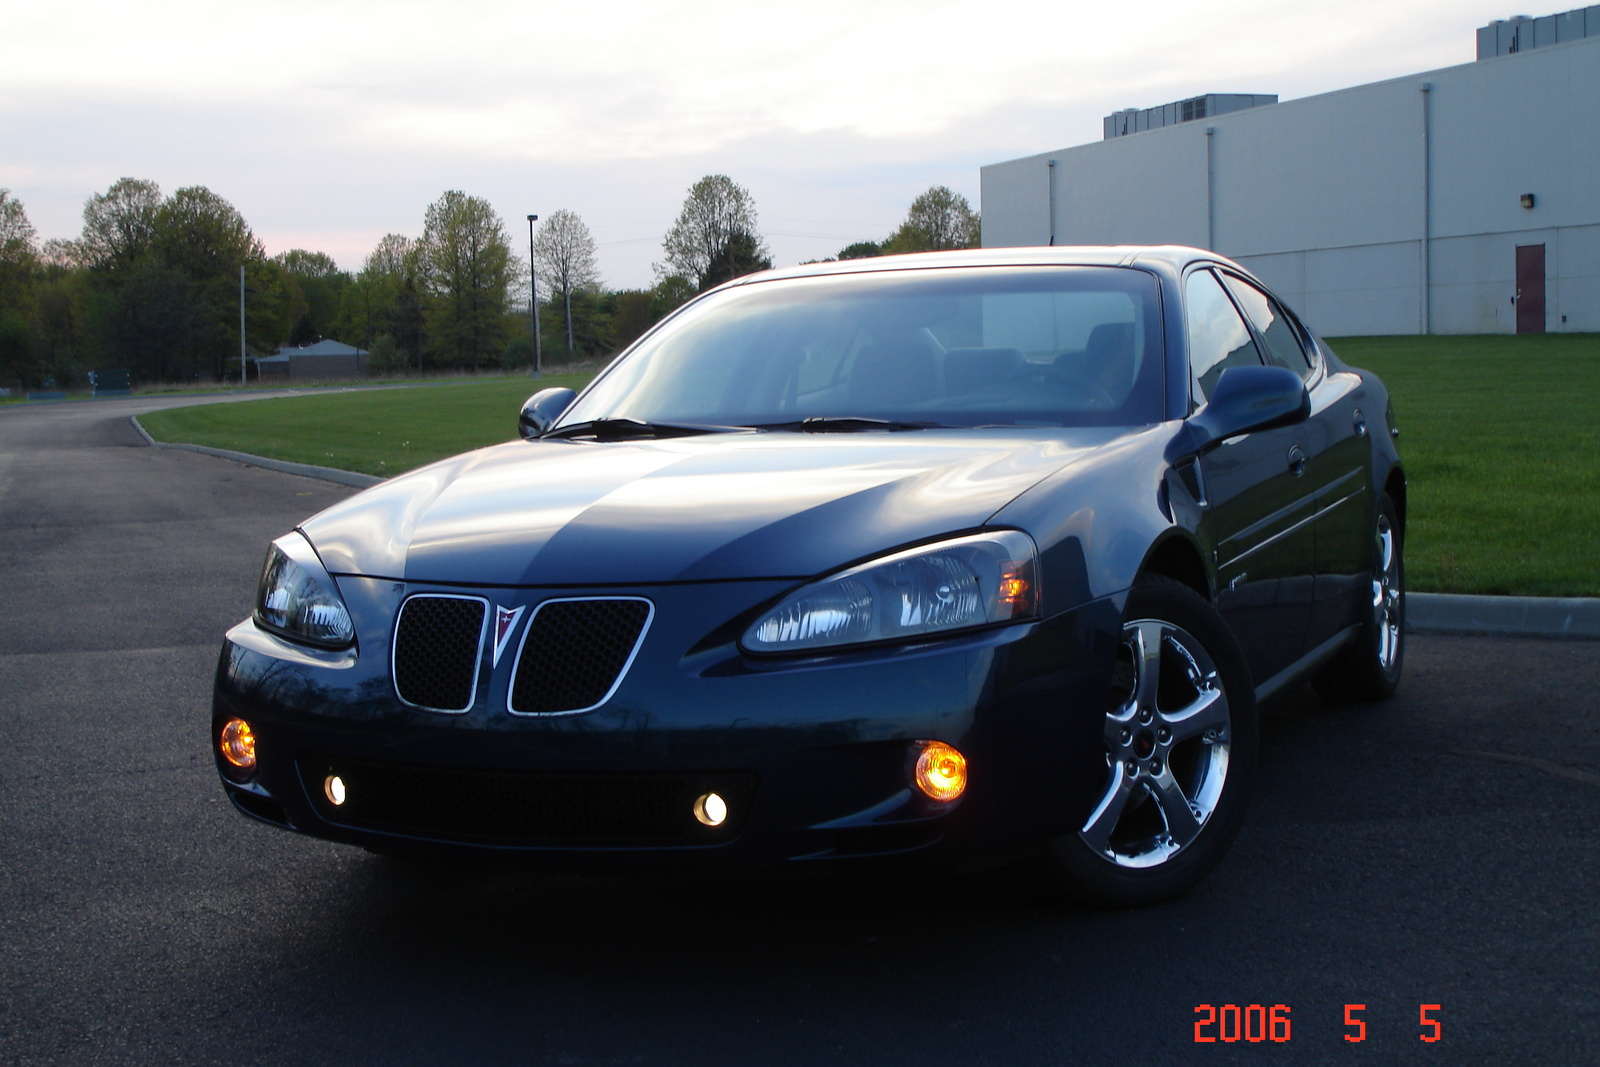 pontiac grand prix related images start 50 weili automotive network. Black Bedroom Furniture Sets. Home Design Ideas